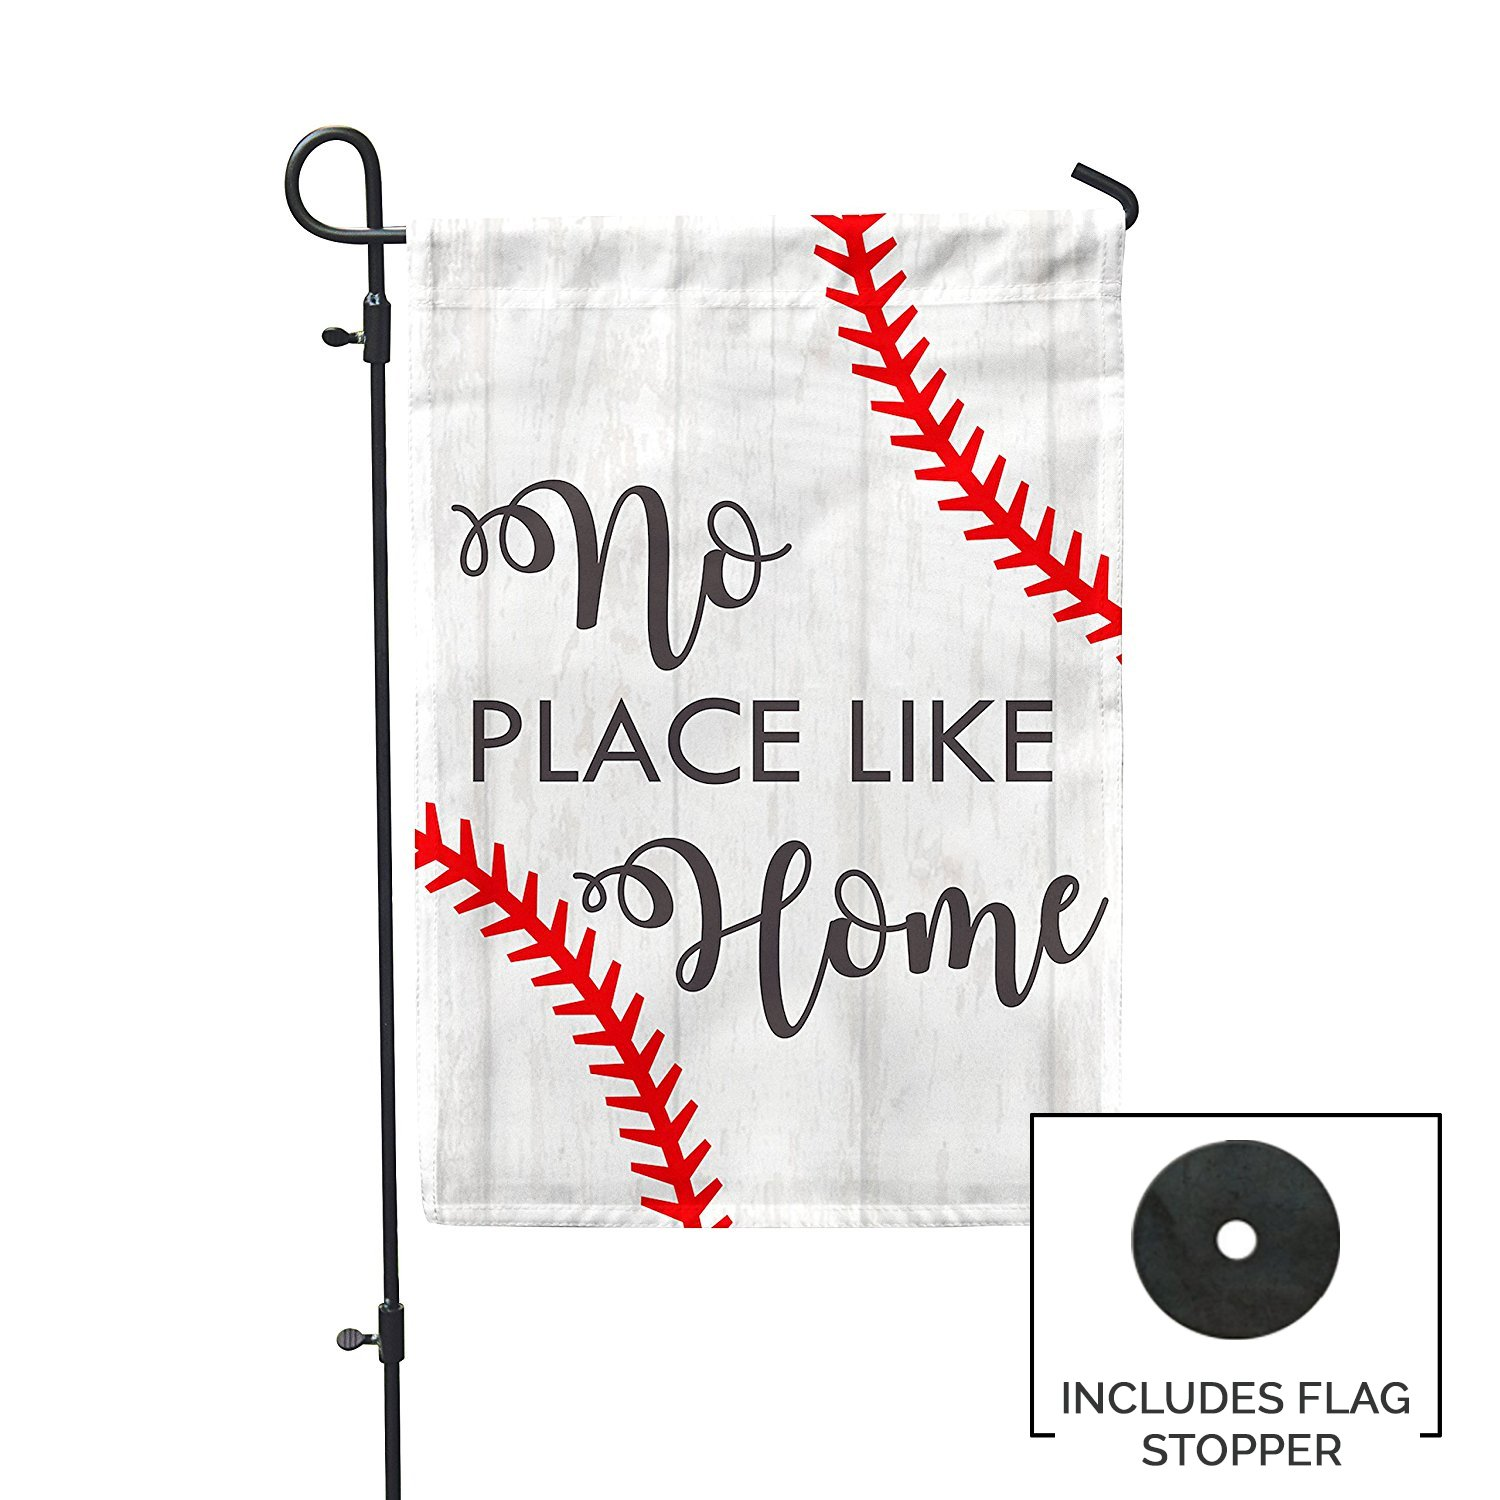 Second East No Place Like Home Baseball Garden Flag Outdoor Patio Seasonal Holiday Fabric 12''X18'' by Second East